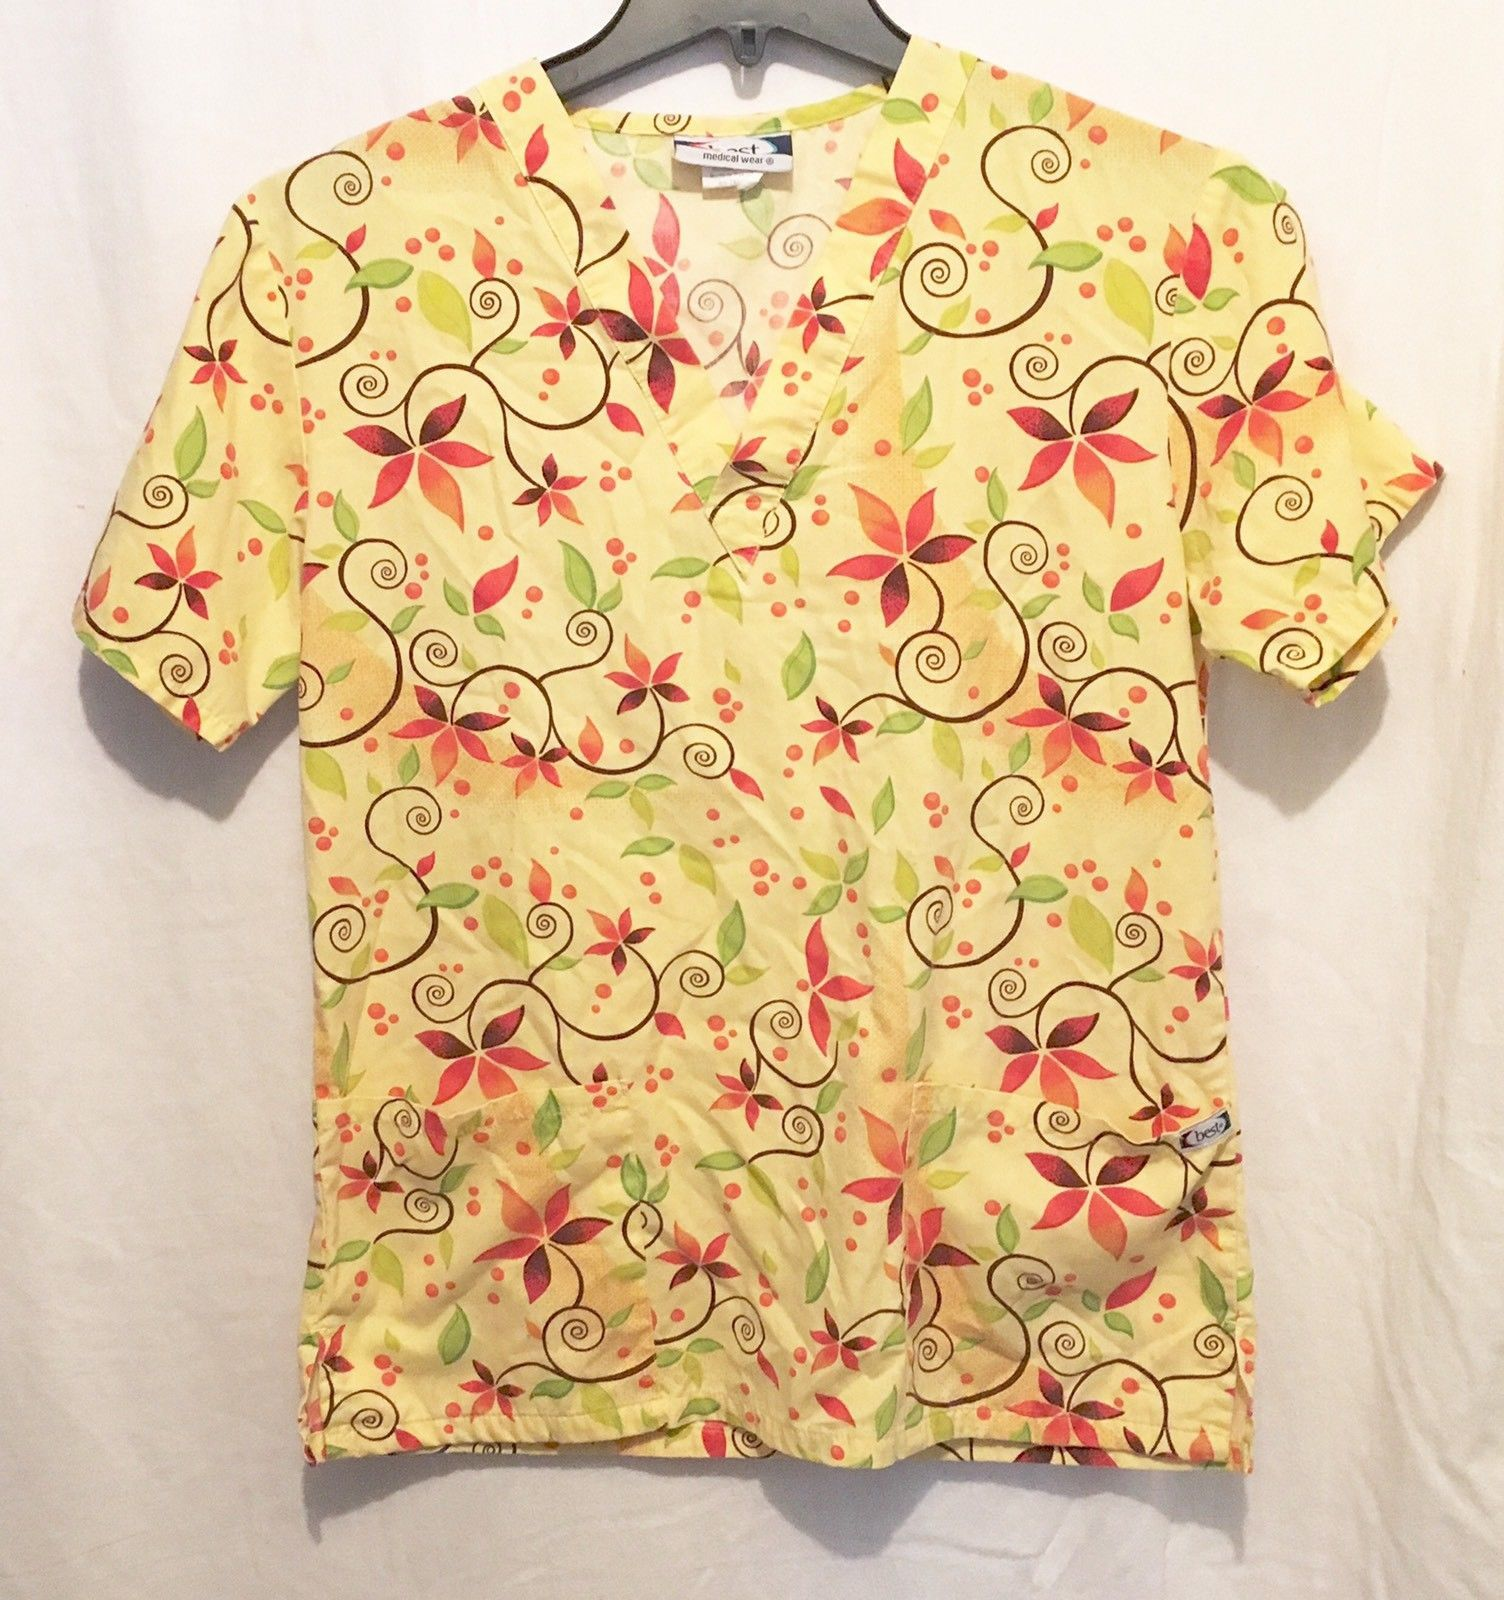 80e58fd665c S l1600. S l1600. Previous. Best Medical Wear XS Scrub Top Yellow Floral  Short Sleeve V Neck Womens B2